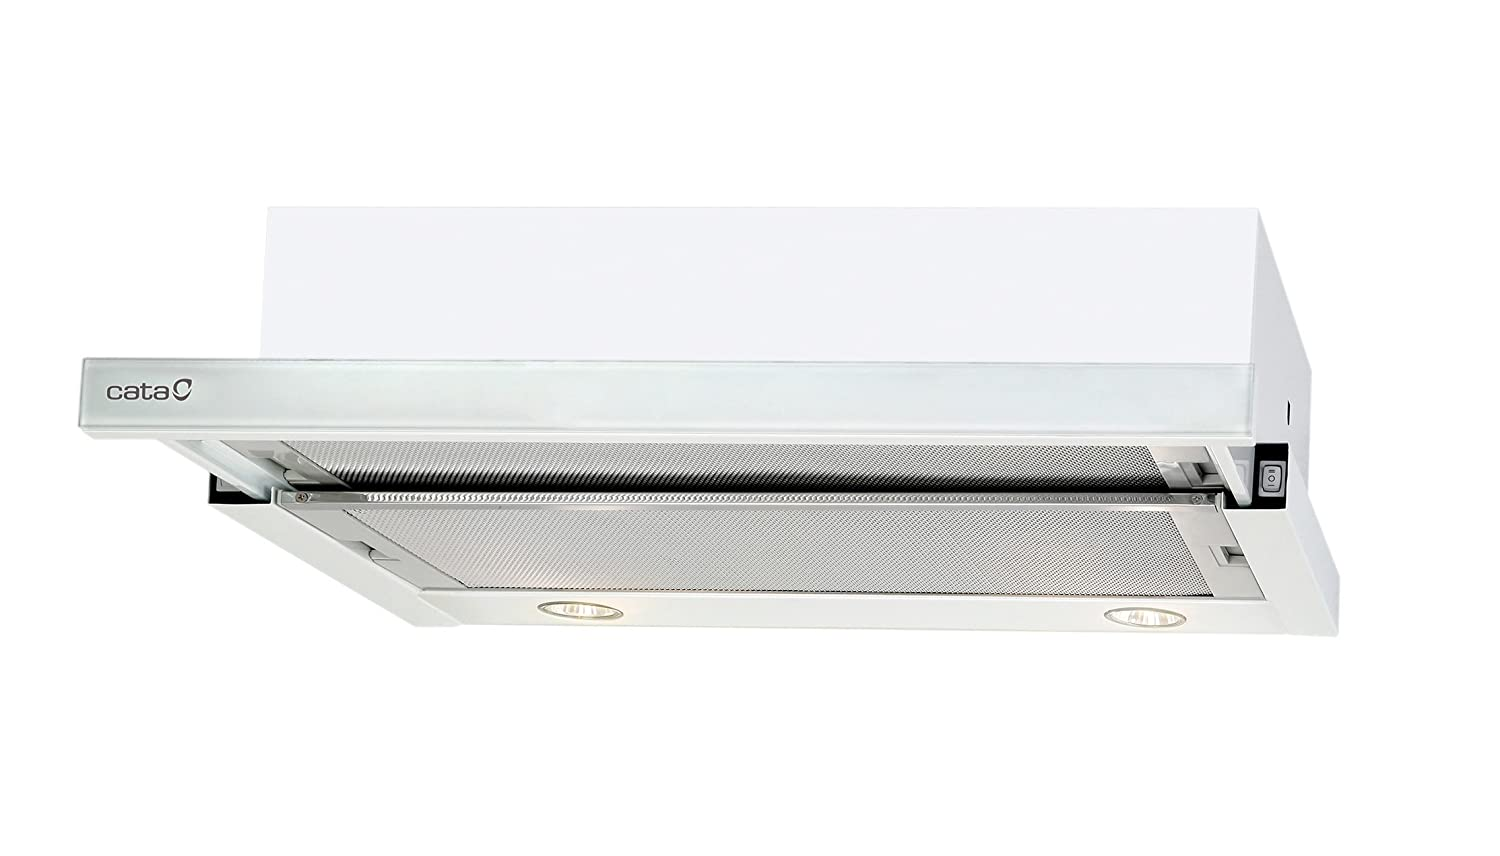 CATA TF 2003 GWH - cooker hoods (Built-in, Ducted, E, E, F, D)